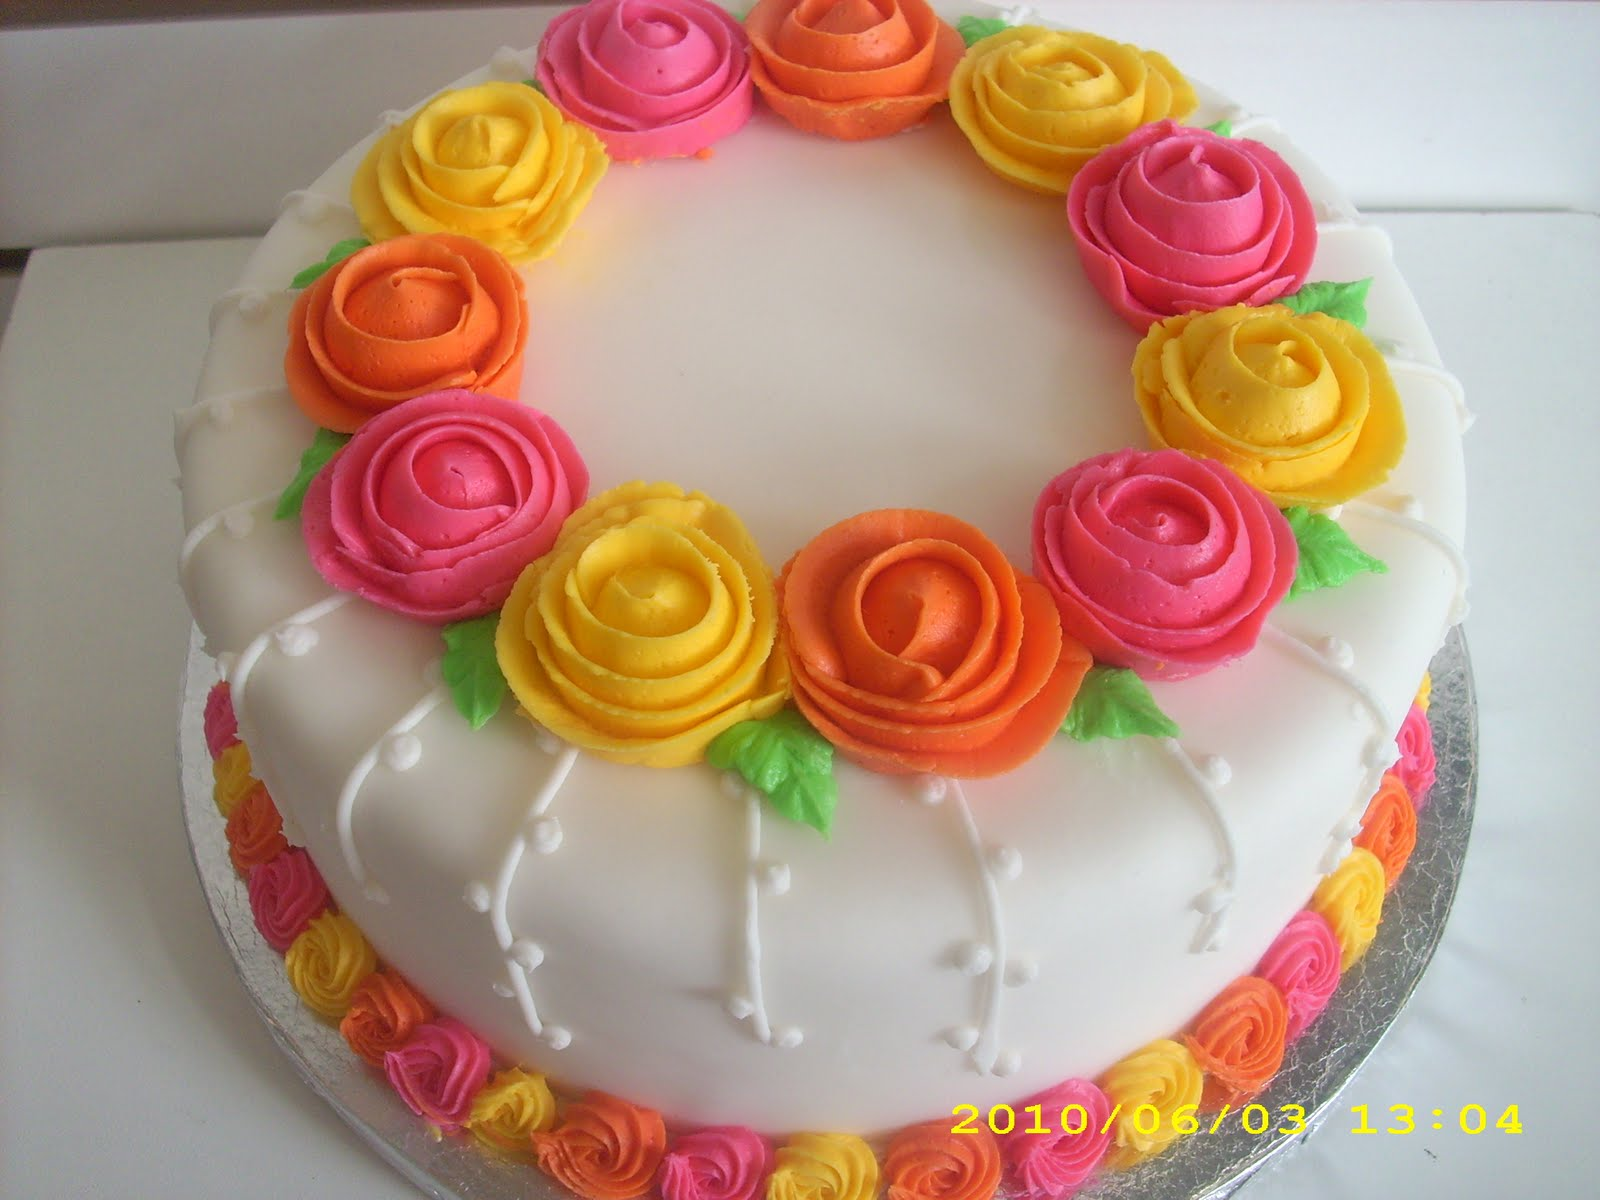 Cake Decoration With Icing : Cake-A-Thon: Decorating Basics Wilton Method Course